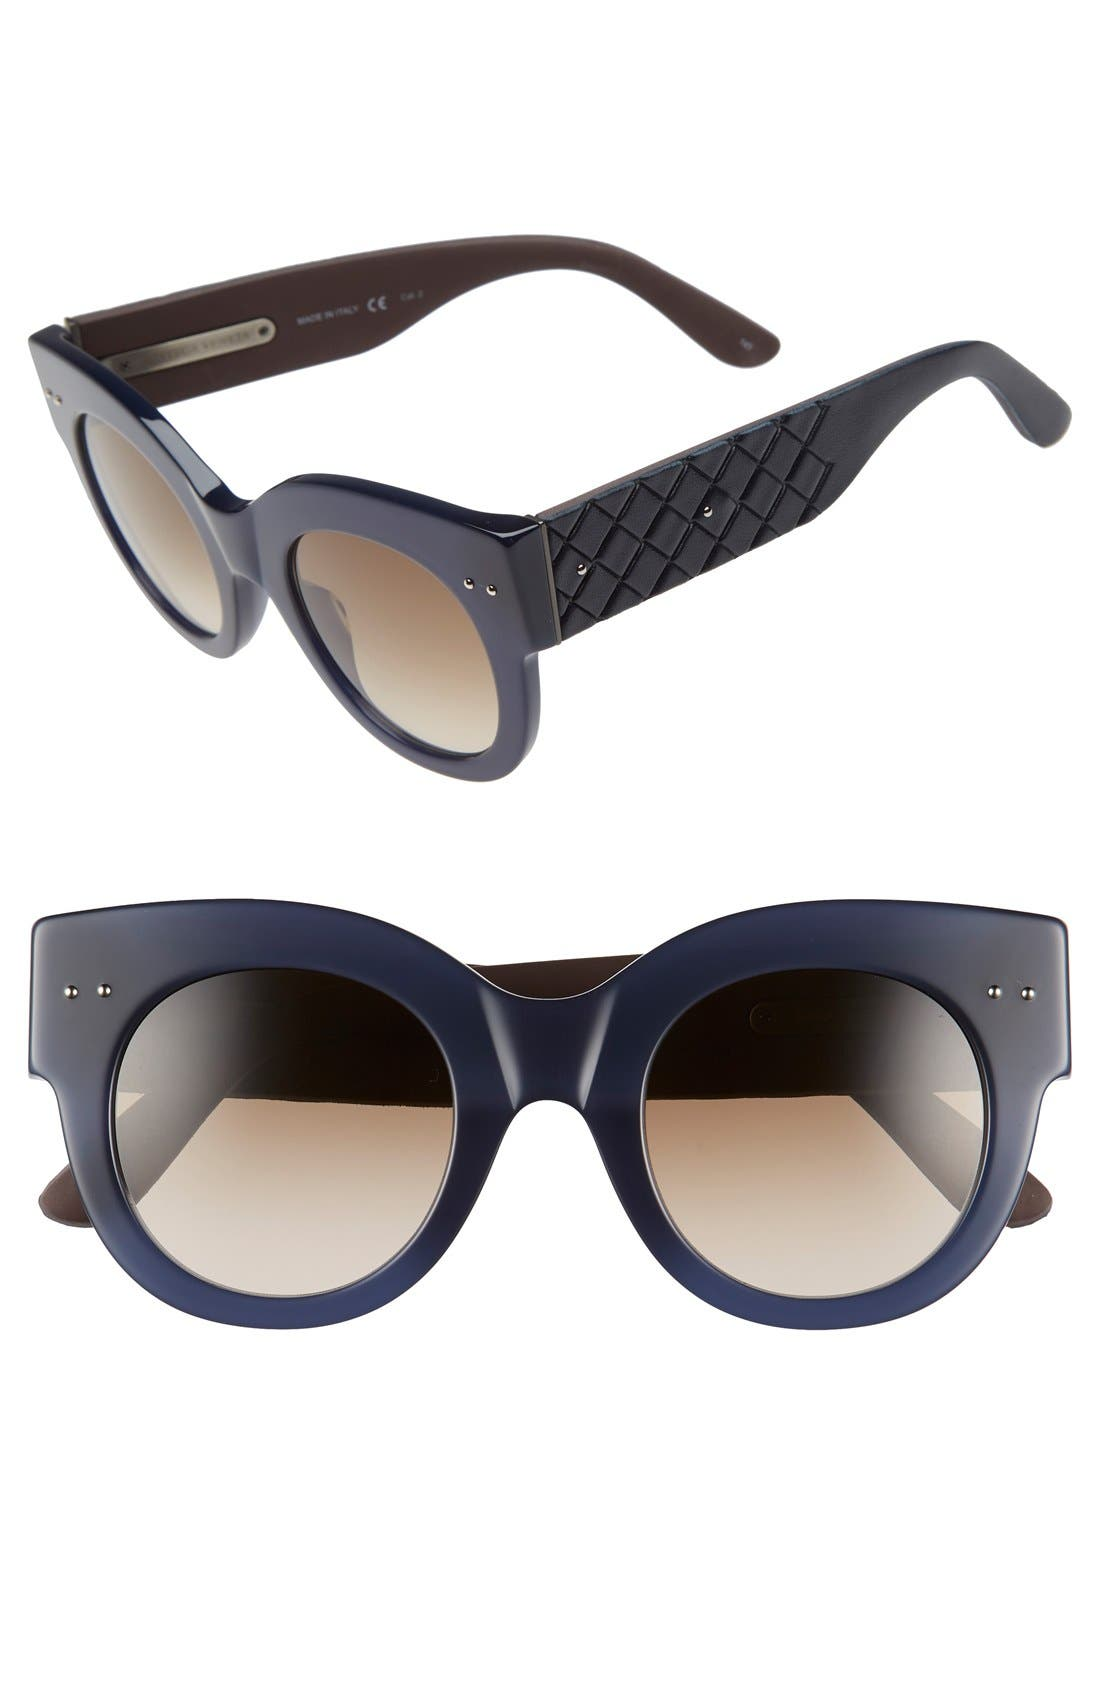 BOTTEGA VENETA 48mm Sunglasses